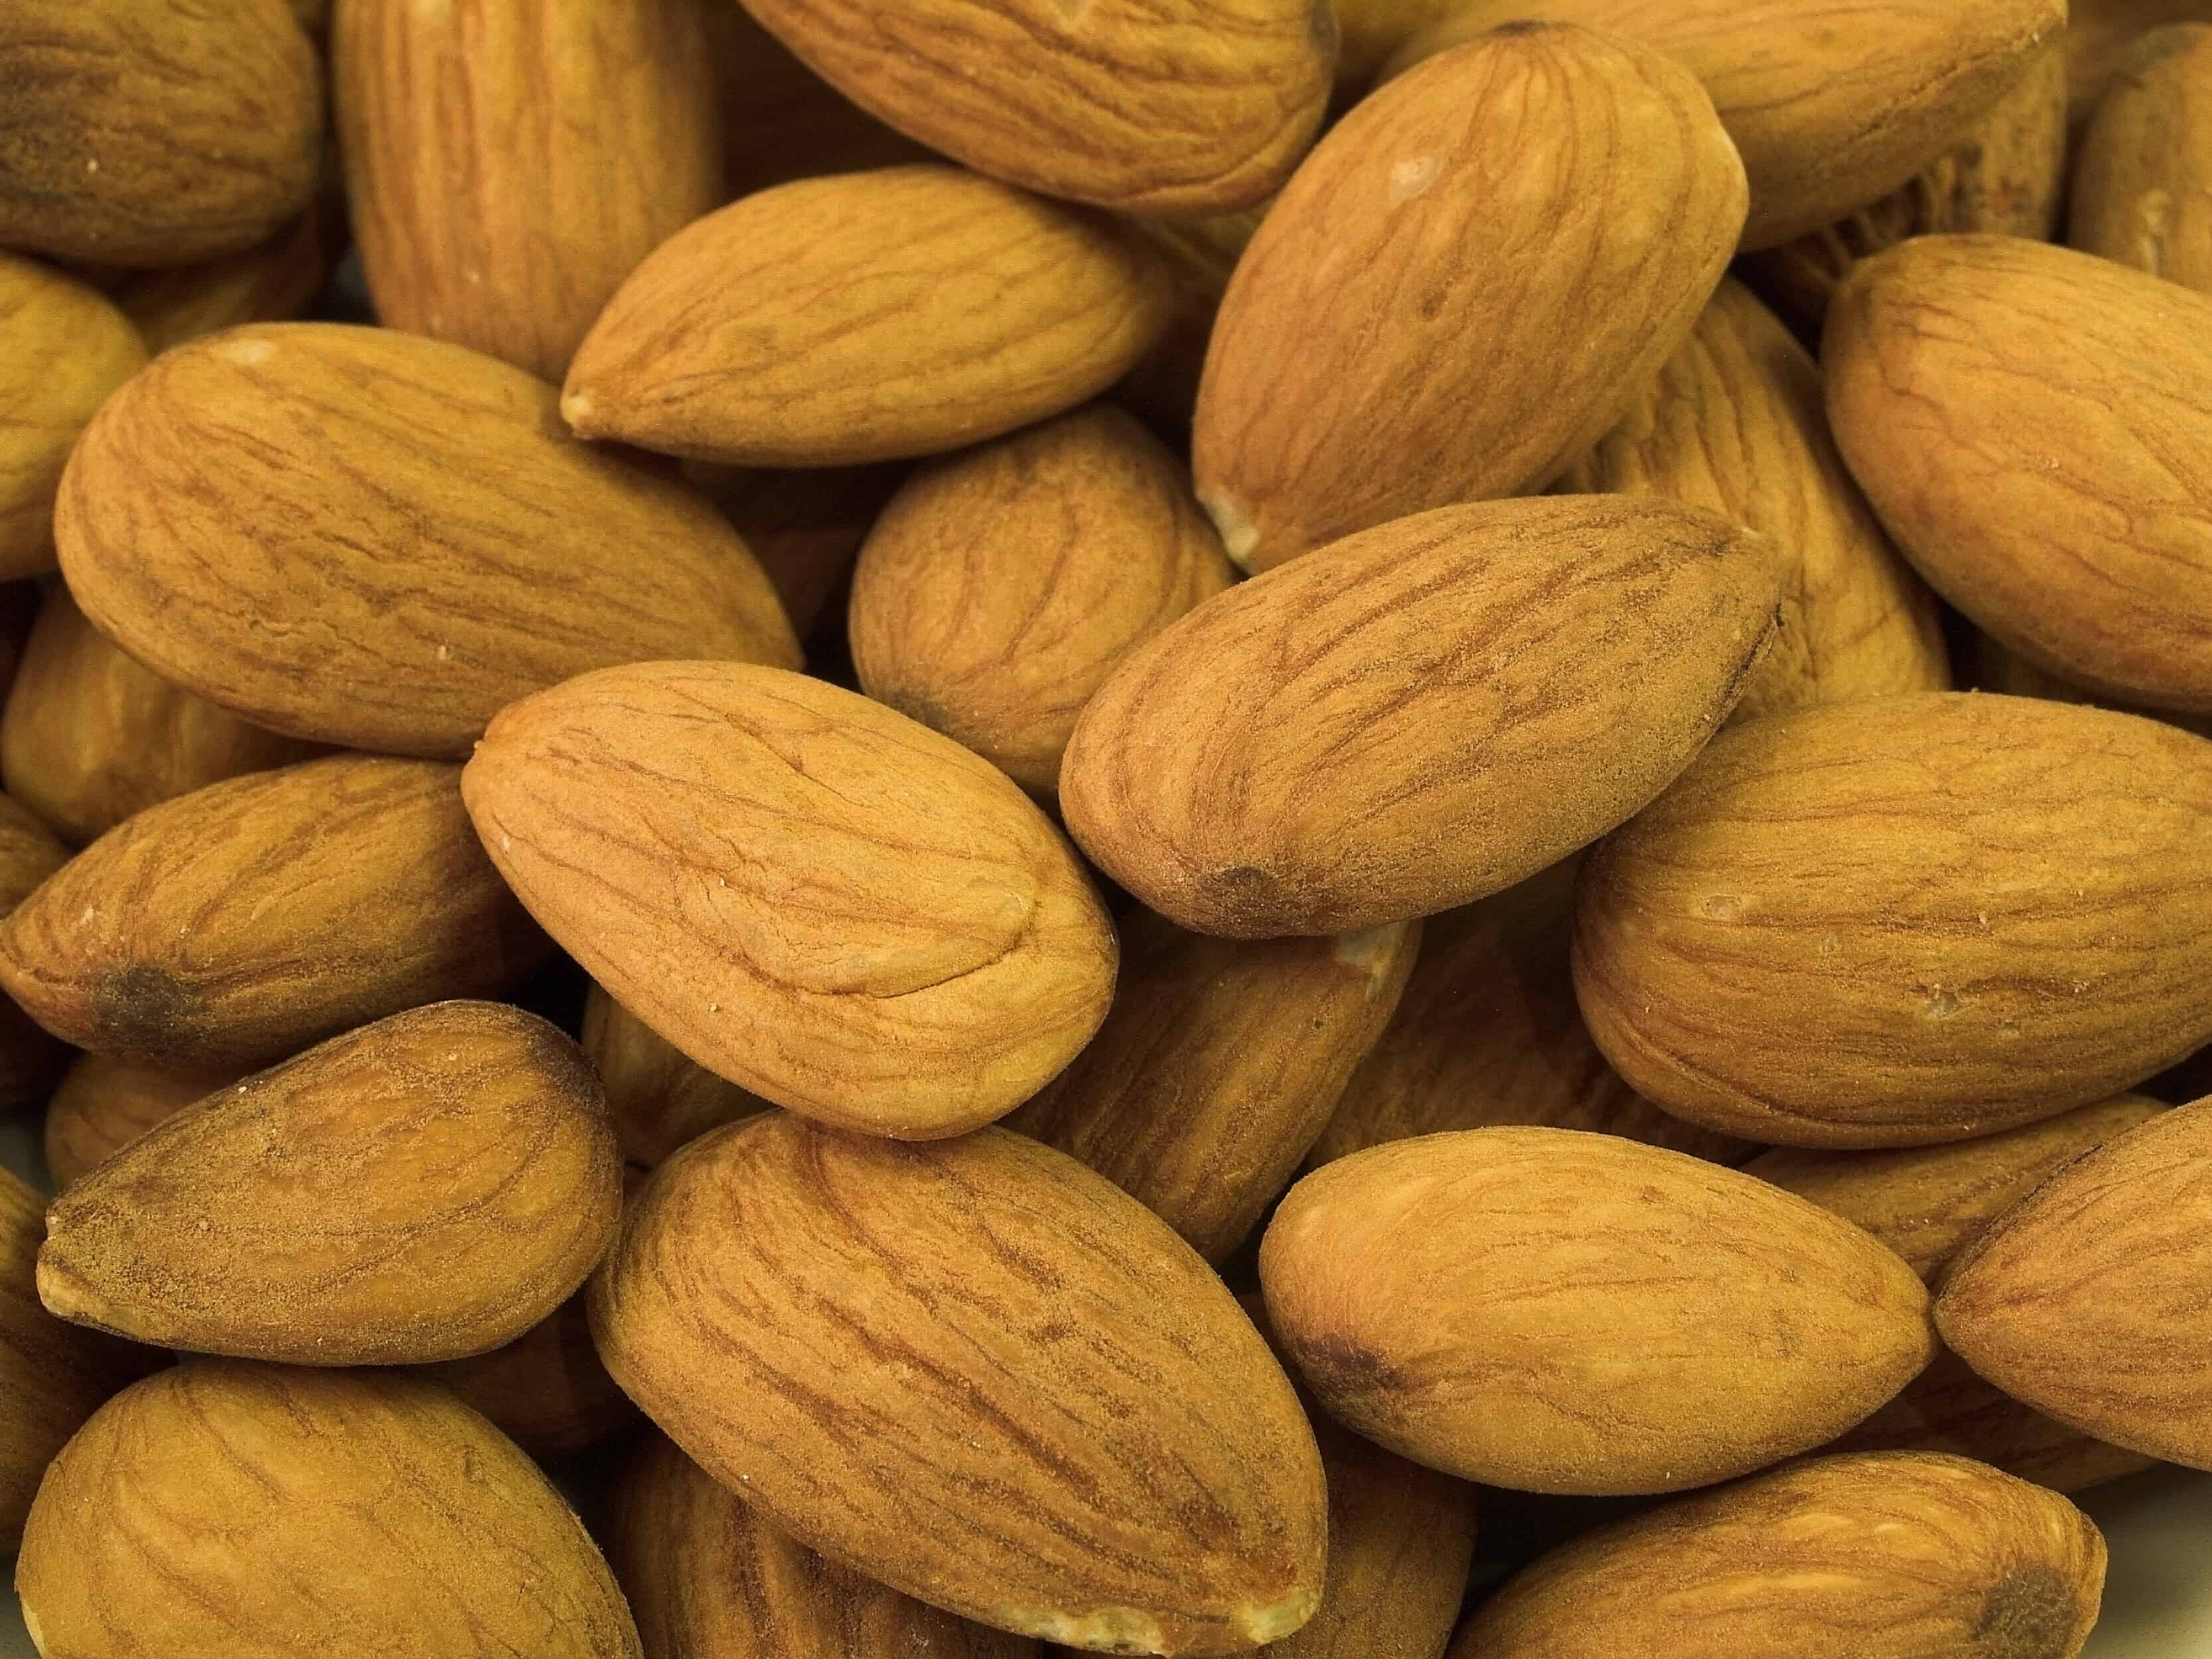 almonds prevent grey hair